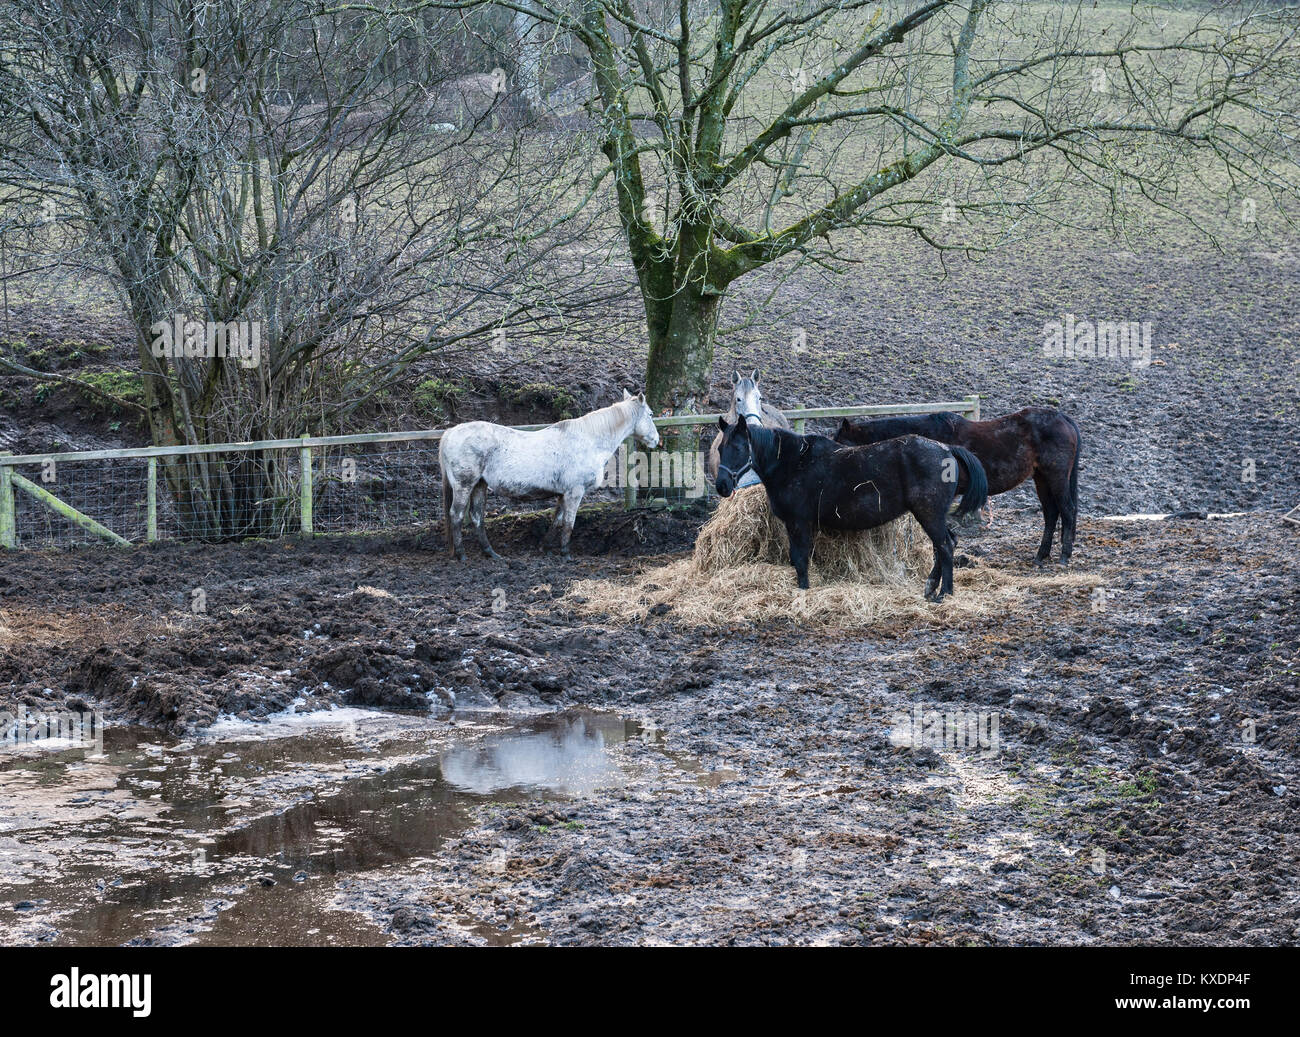 Radnorshire, Wales, UK. Horses standing in a muddy yard on a wet day in winter - Stock Image